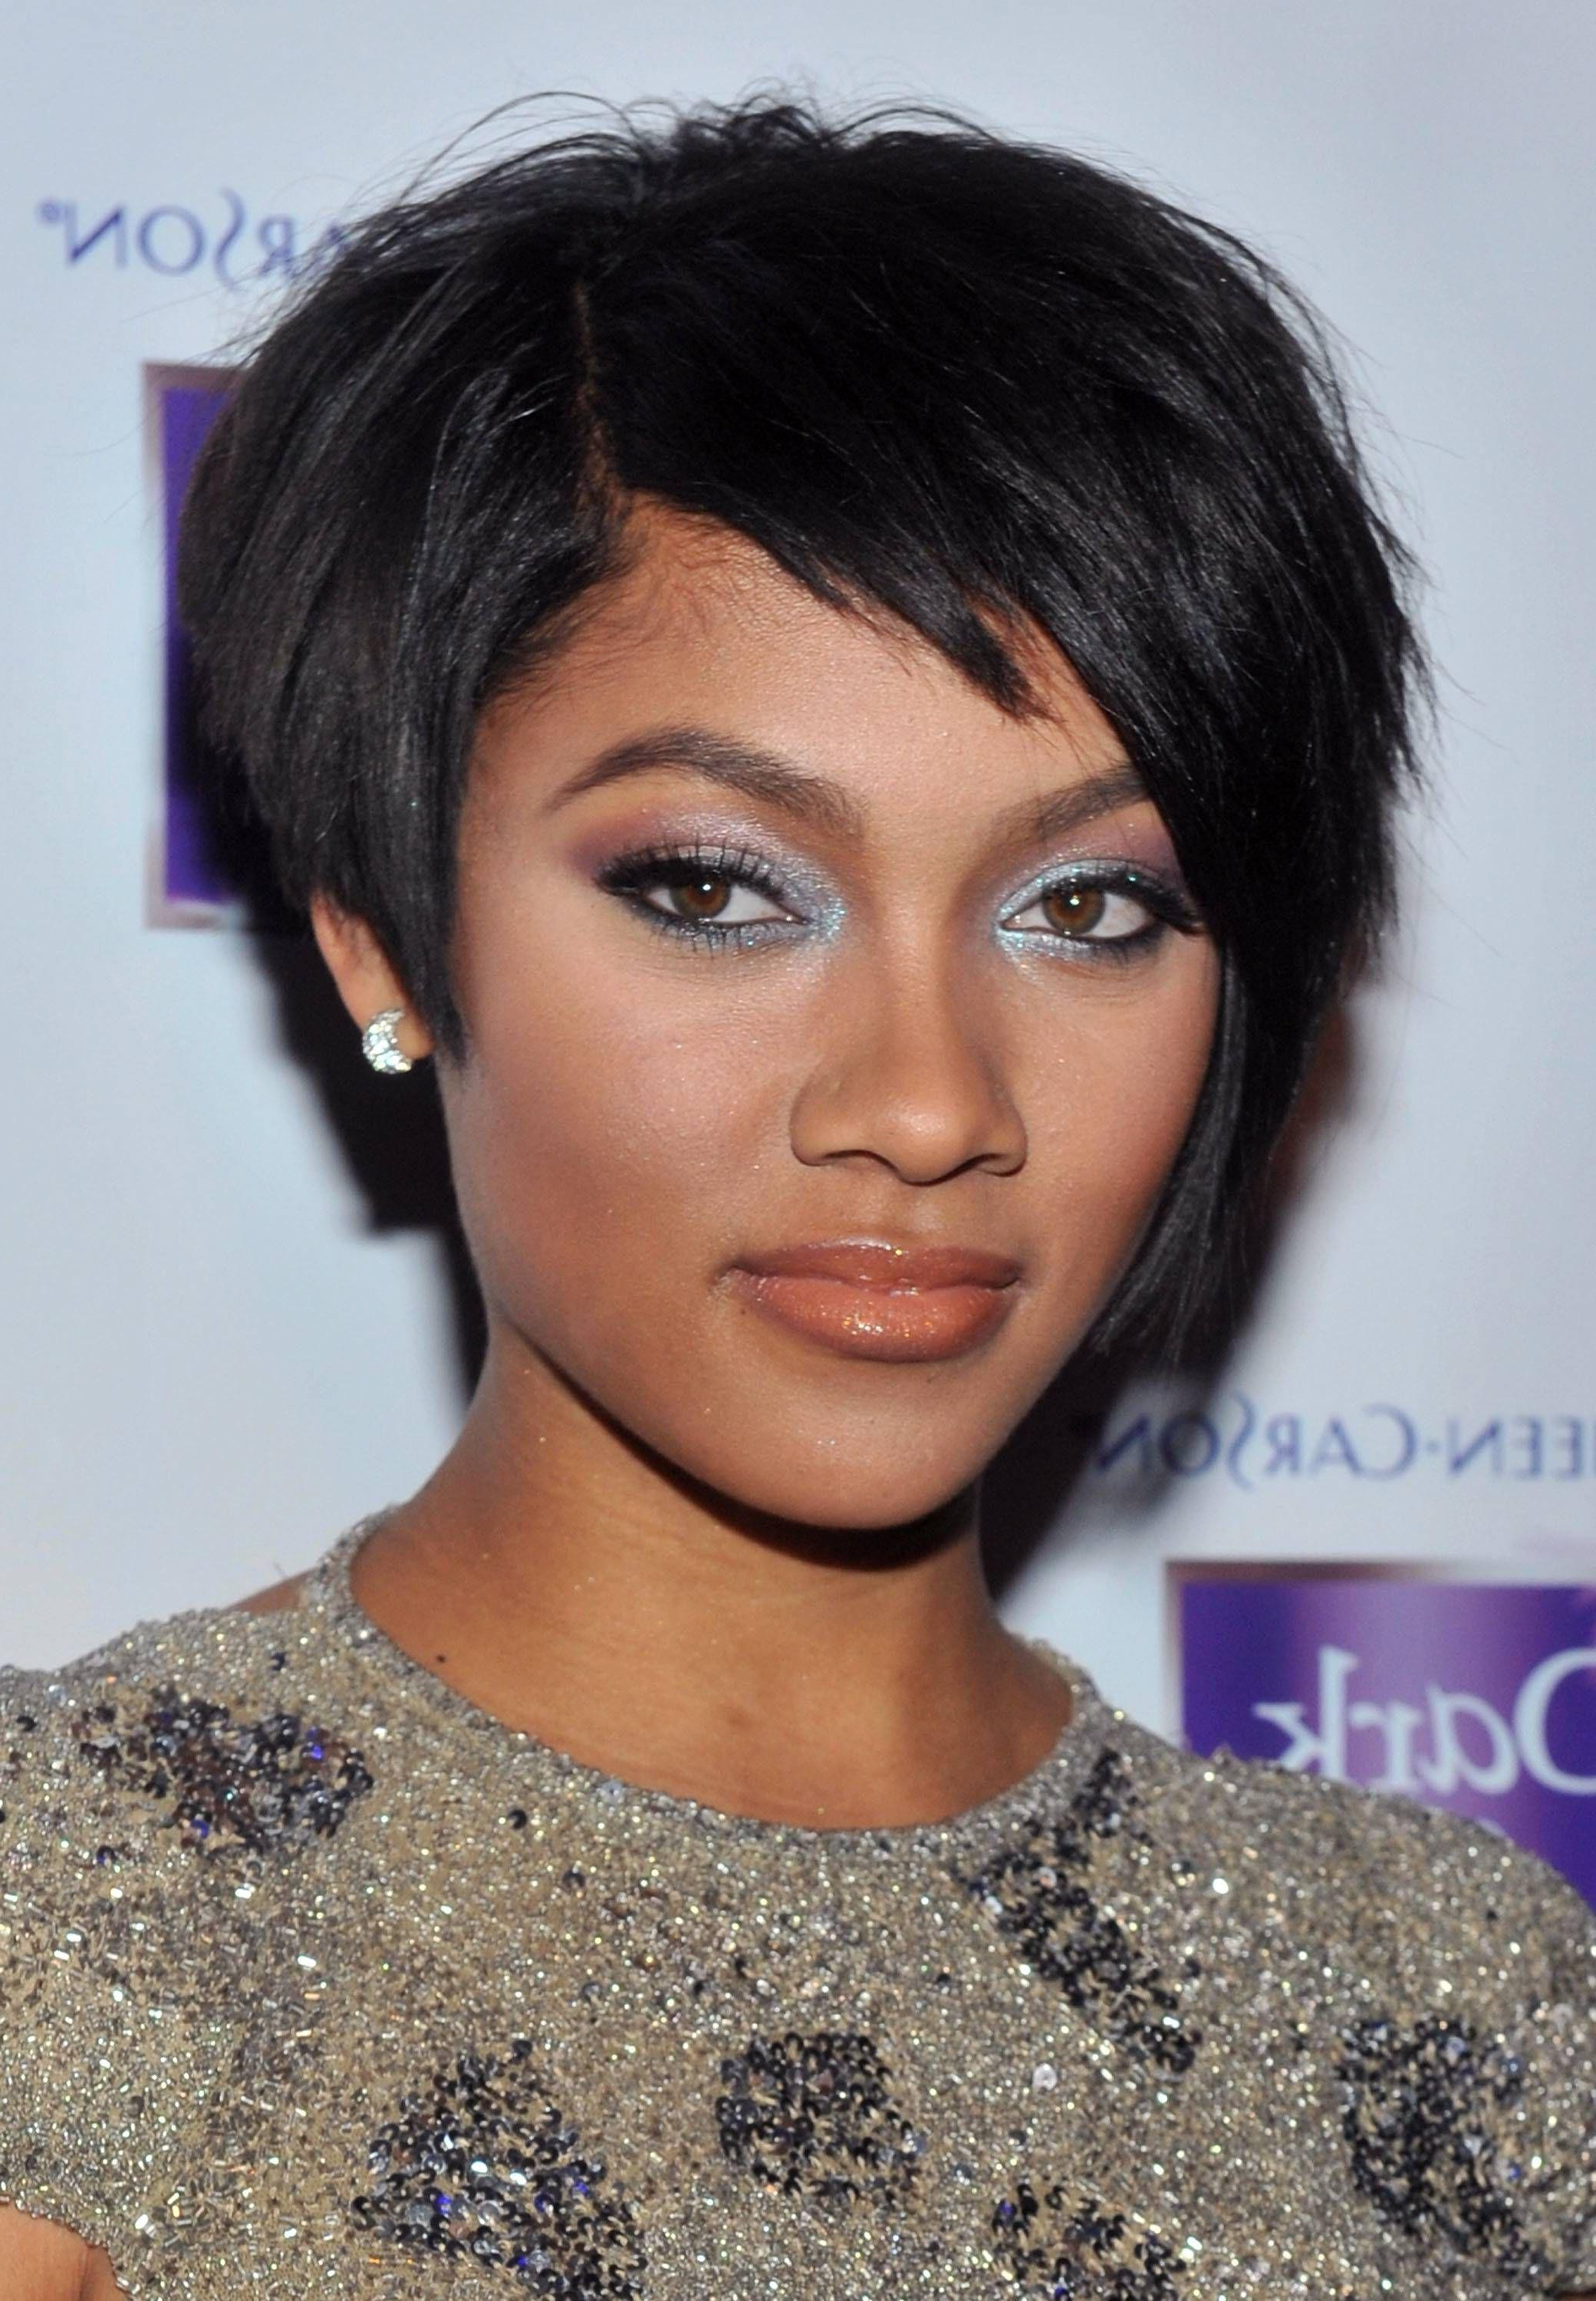 Beautiful Short Hairstyles For Black Women With Round Faces 2016 Concept Intended For Short Haircuts For Round Faces Black Hair (View 7 of 25)